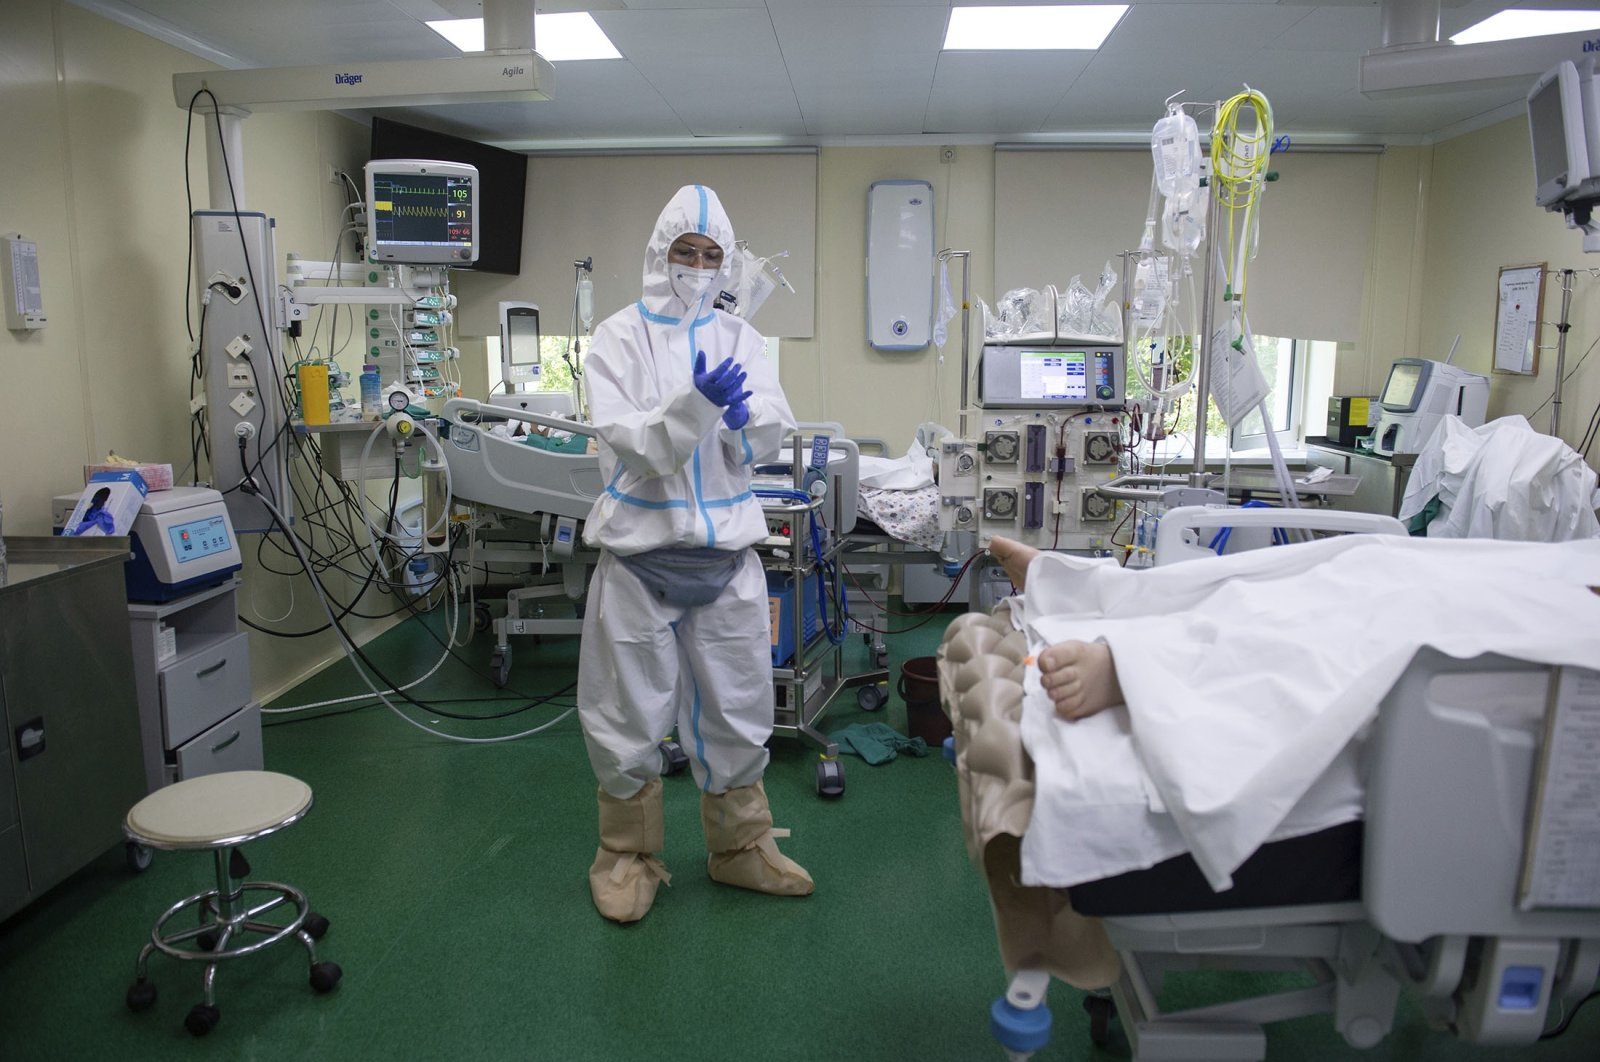 A medic wearing a special suit to protect against coronavirus prepares to treat a patient with coronavirus at the City hospital No. 52 for coronavirus patients in Moscow, Russia, July 13, 2021. (AP Photo)